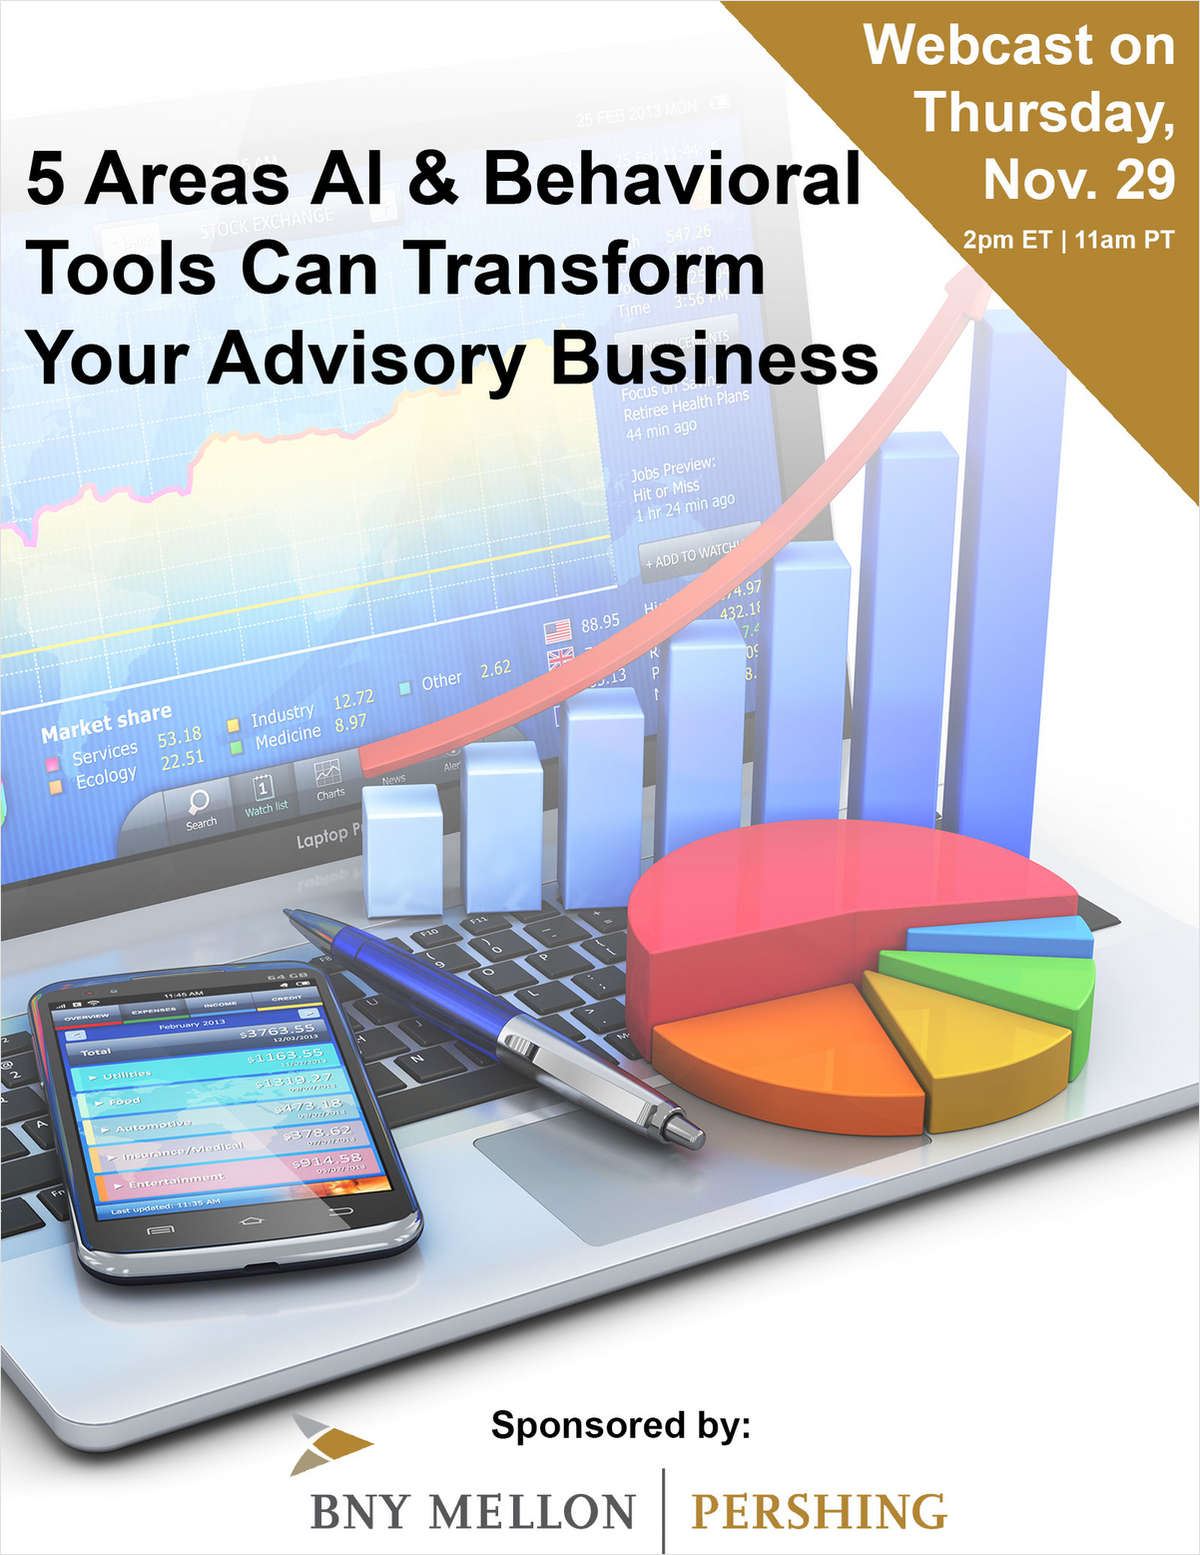 5 Areas AI & Behavioral Tools Can Transform Your Advisory Business